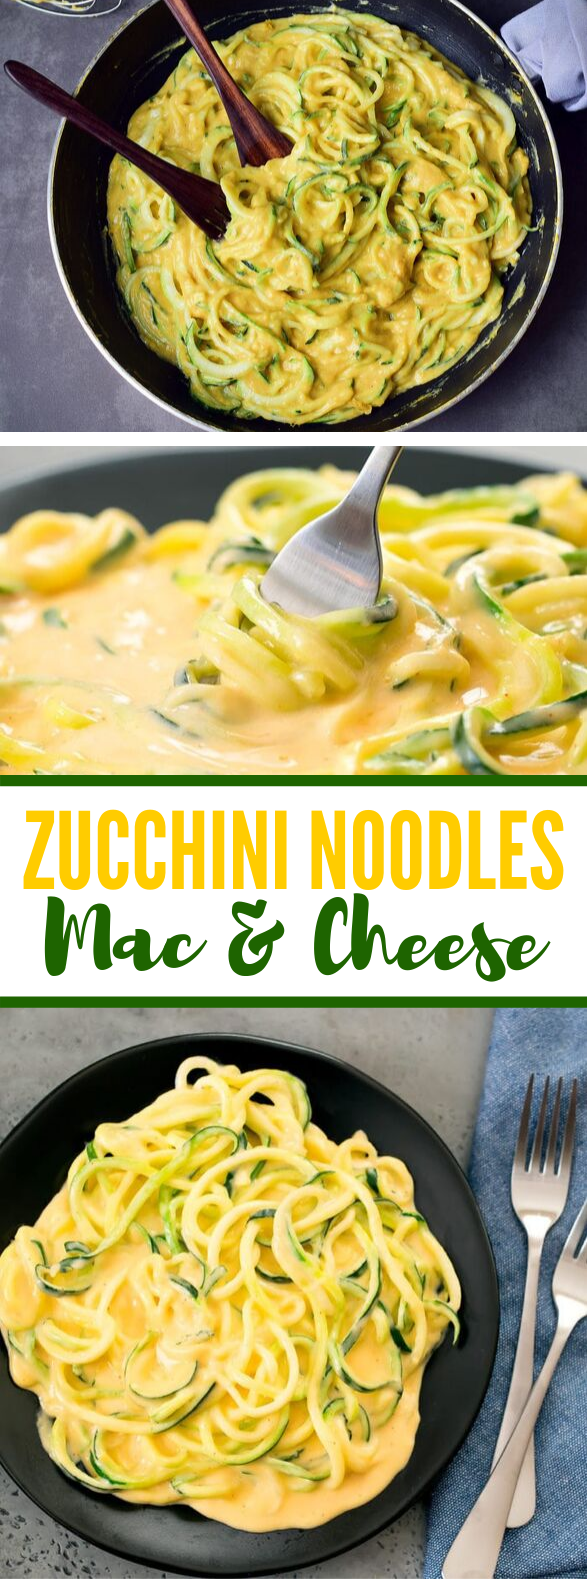 ZUCCHINI NOODLES MAC & CHEESE #lowcarb #healthy